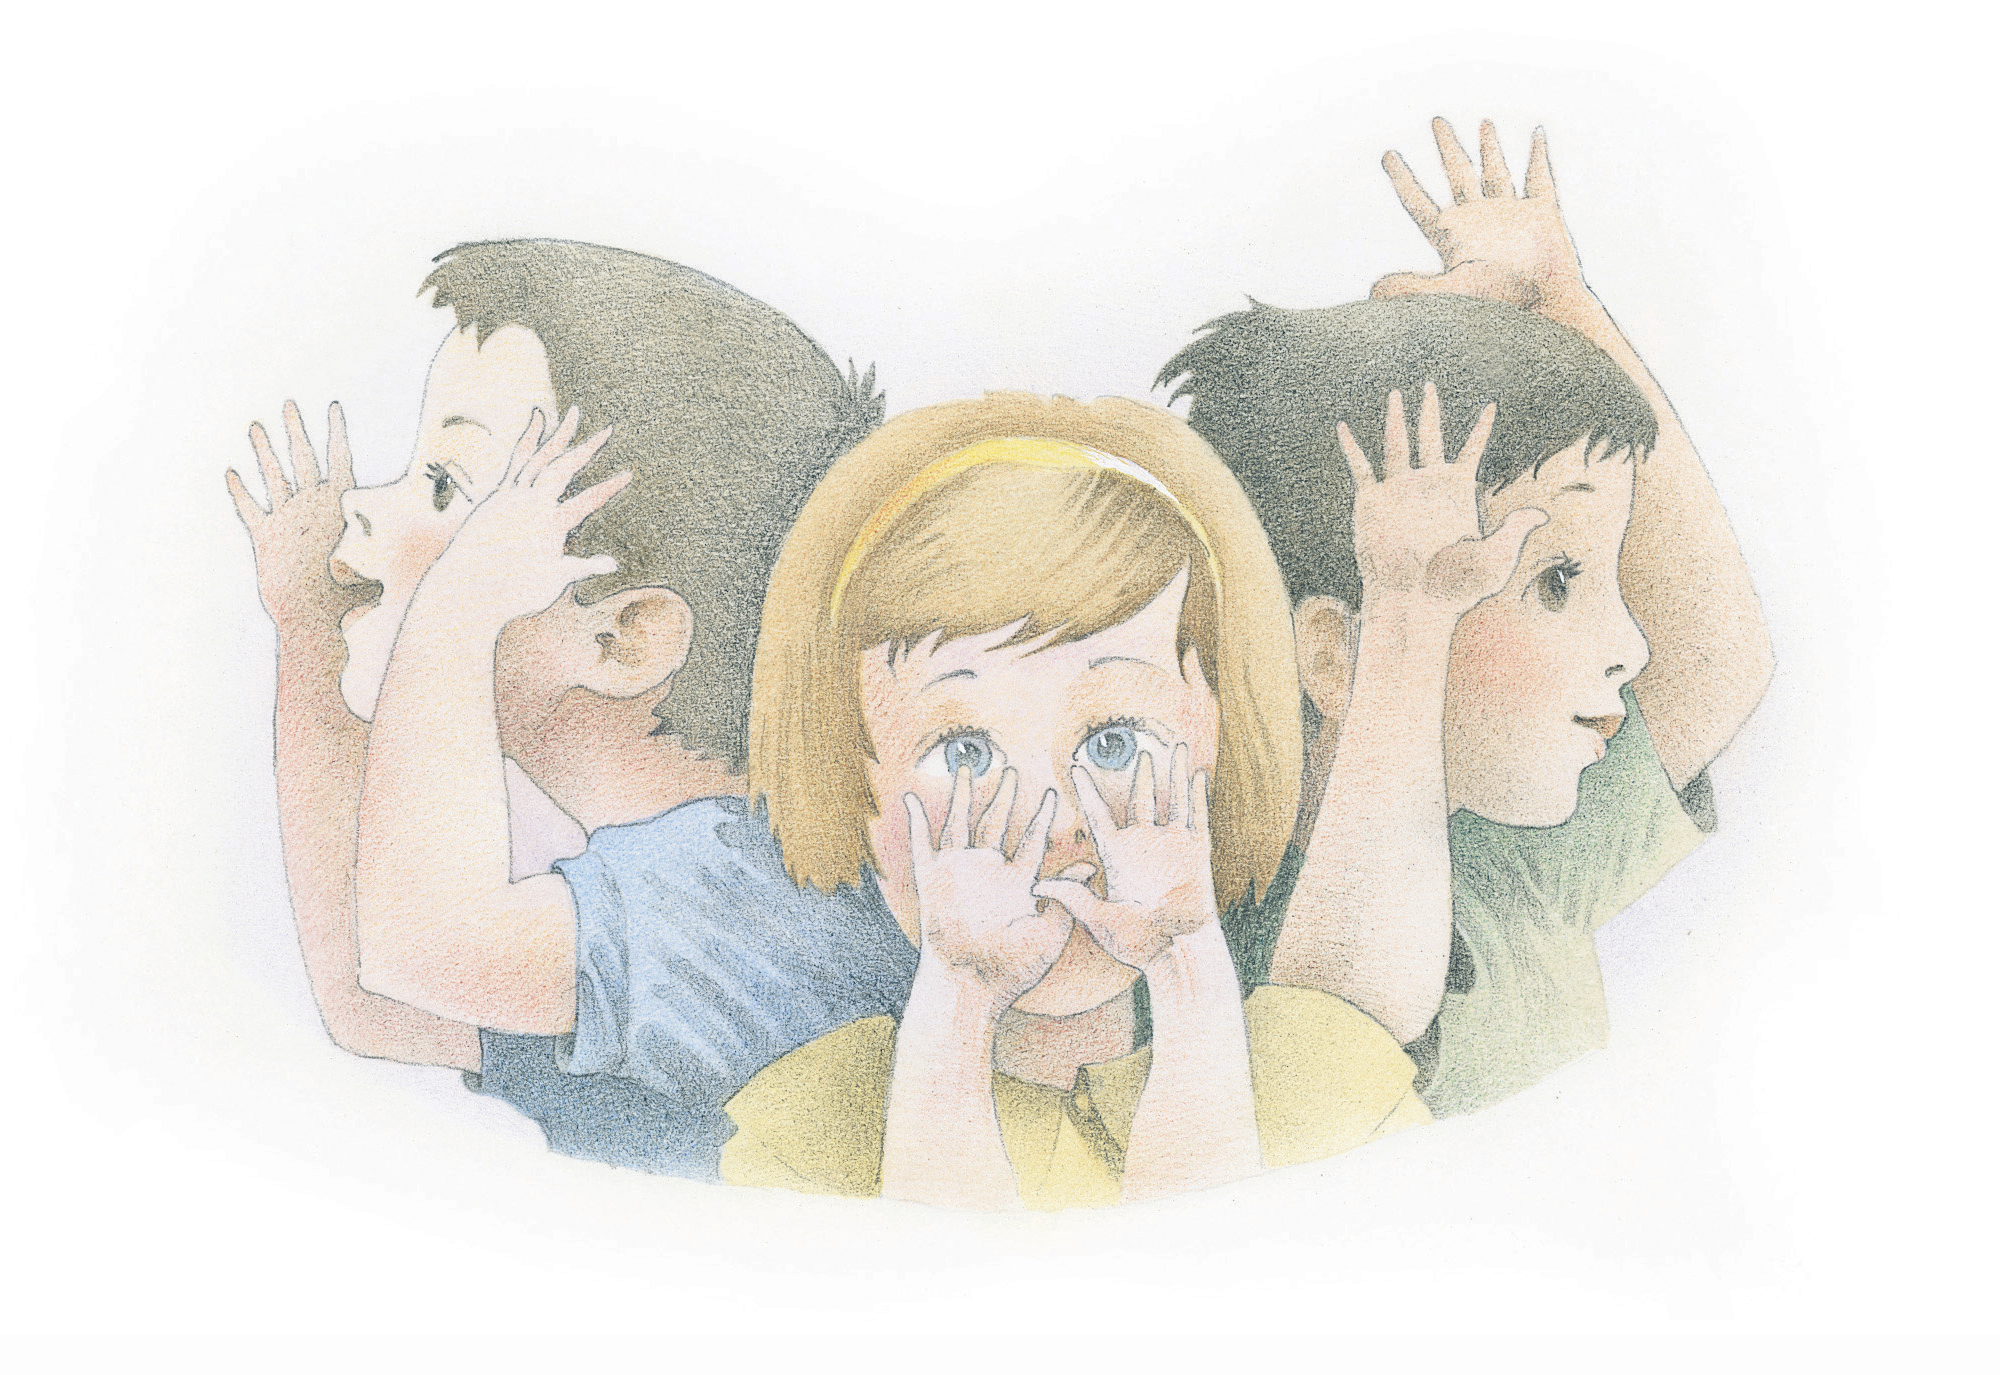 """Three children singing and doing hand motions. From the Children's Songbook, page 273, """"My Hands""""; watercolor illustration by Richard Hull."""